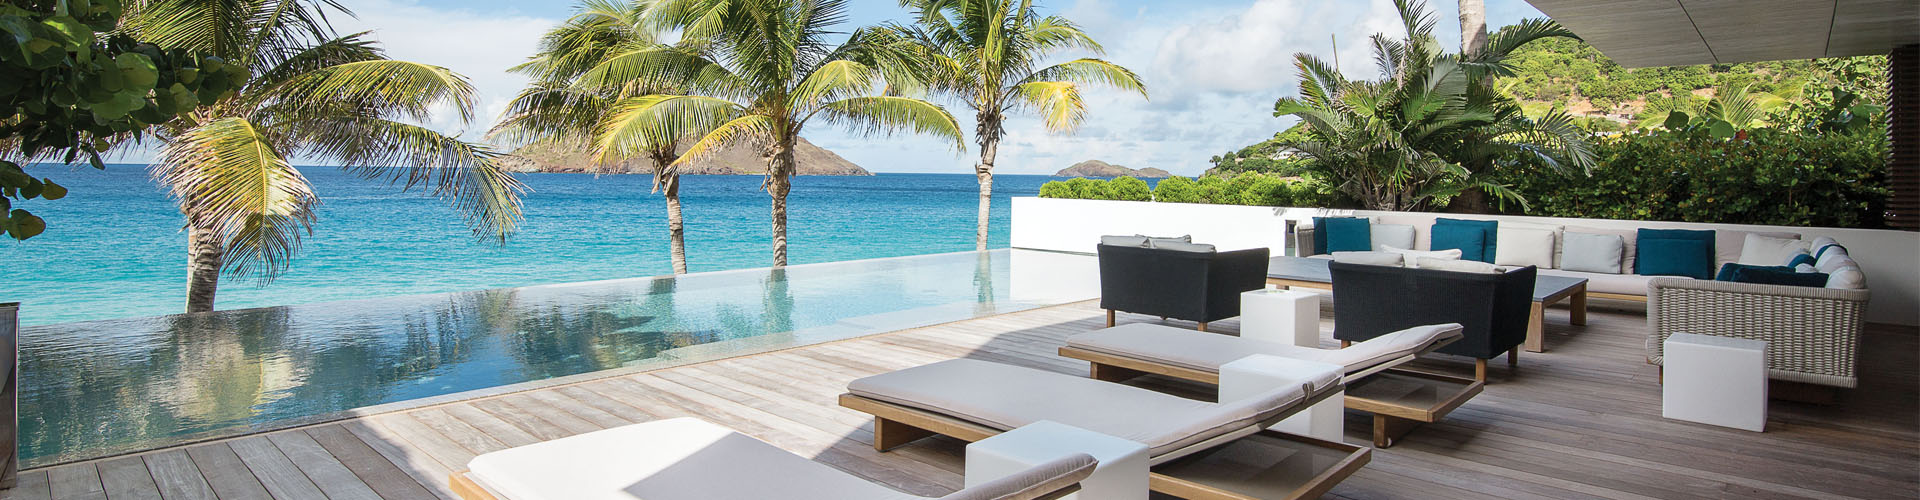 The Collection chooses Wellness for residences, villas and hotels in the most prestigious locations in the world